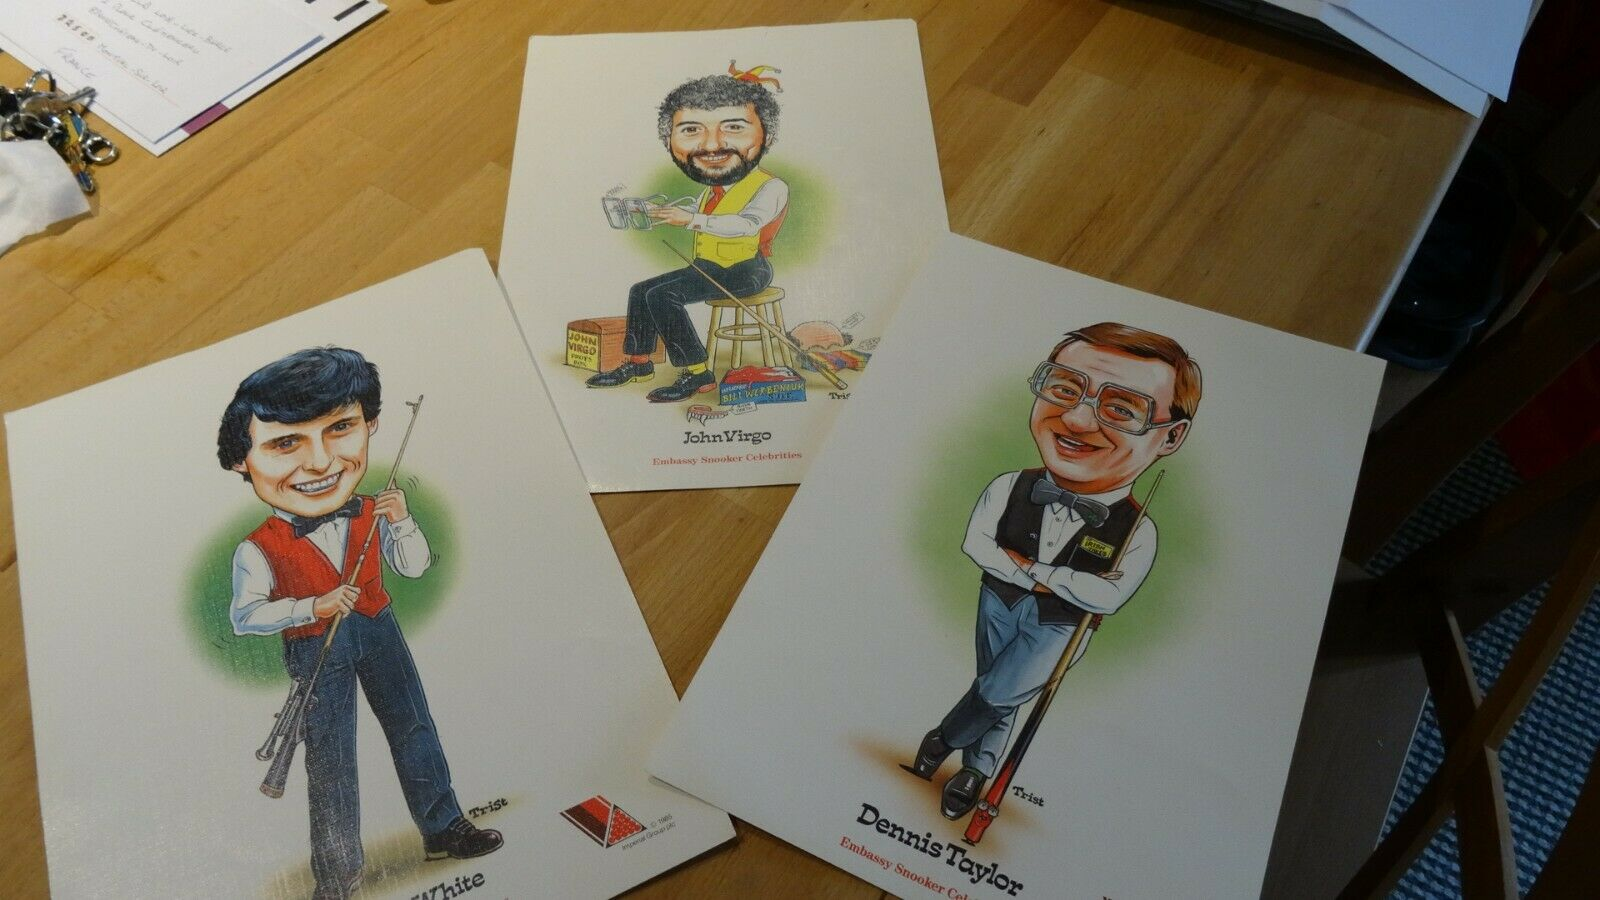 Set of 3 Embassy Snooker Celebrities Cartoon Portraits, Virgo, Taylor and White A4